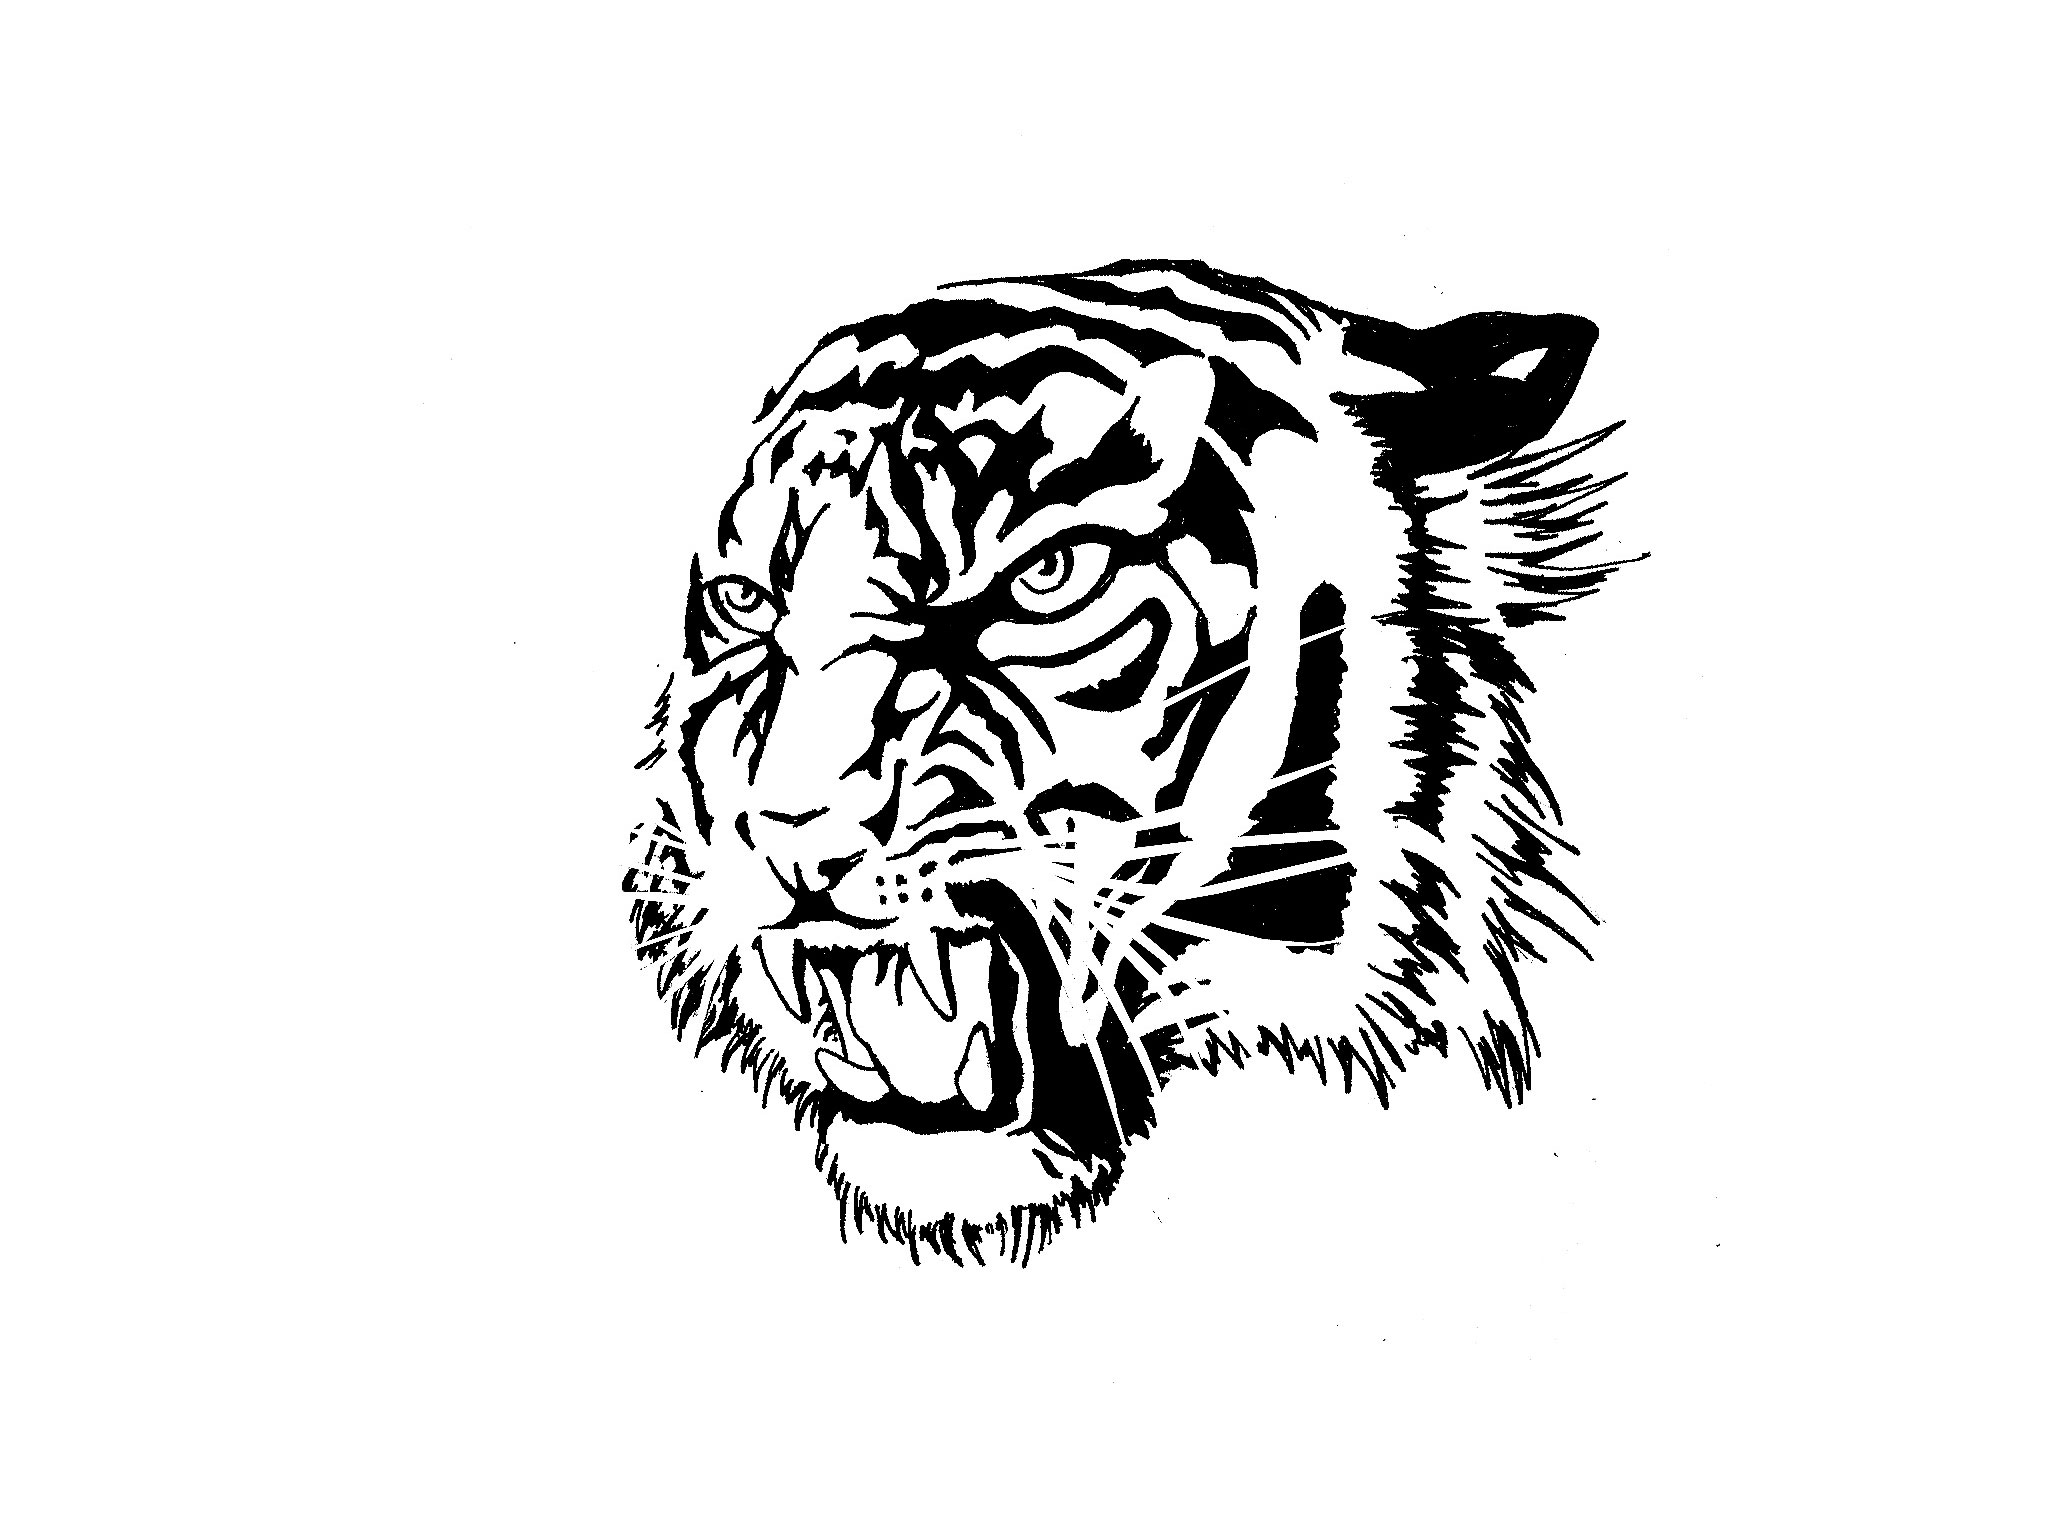 2048x1536 Tiger Tattoo Images Wallpaper